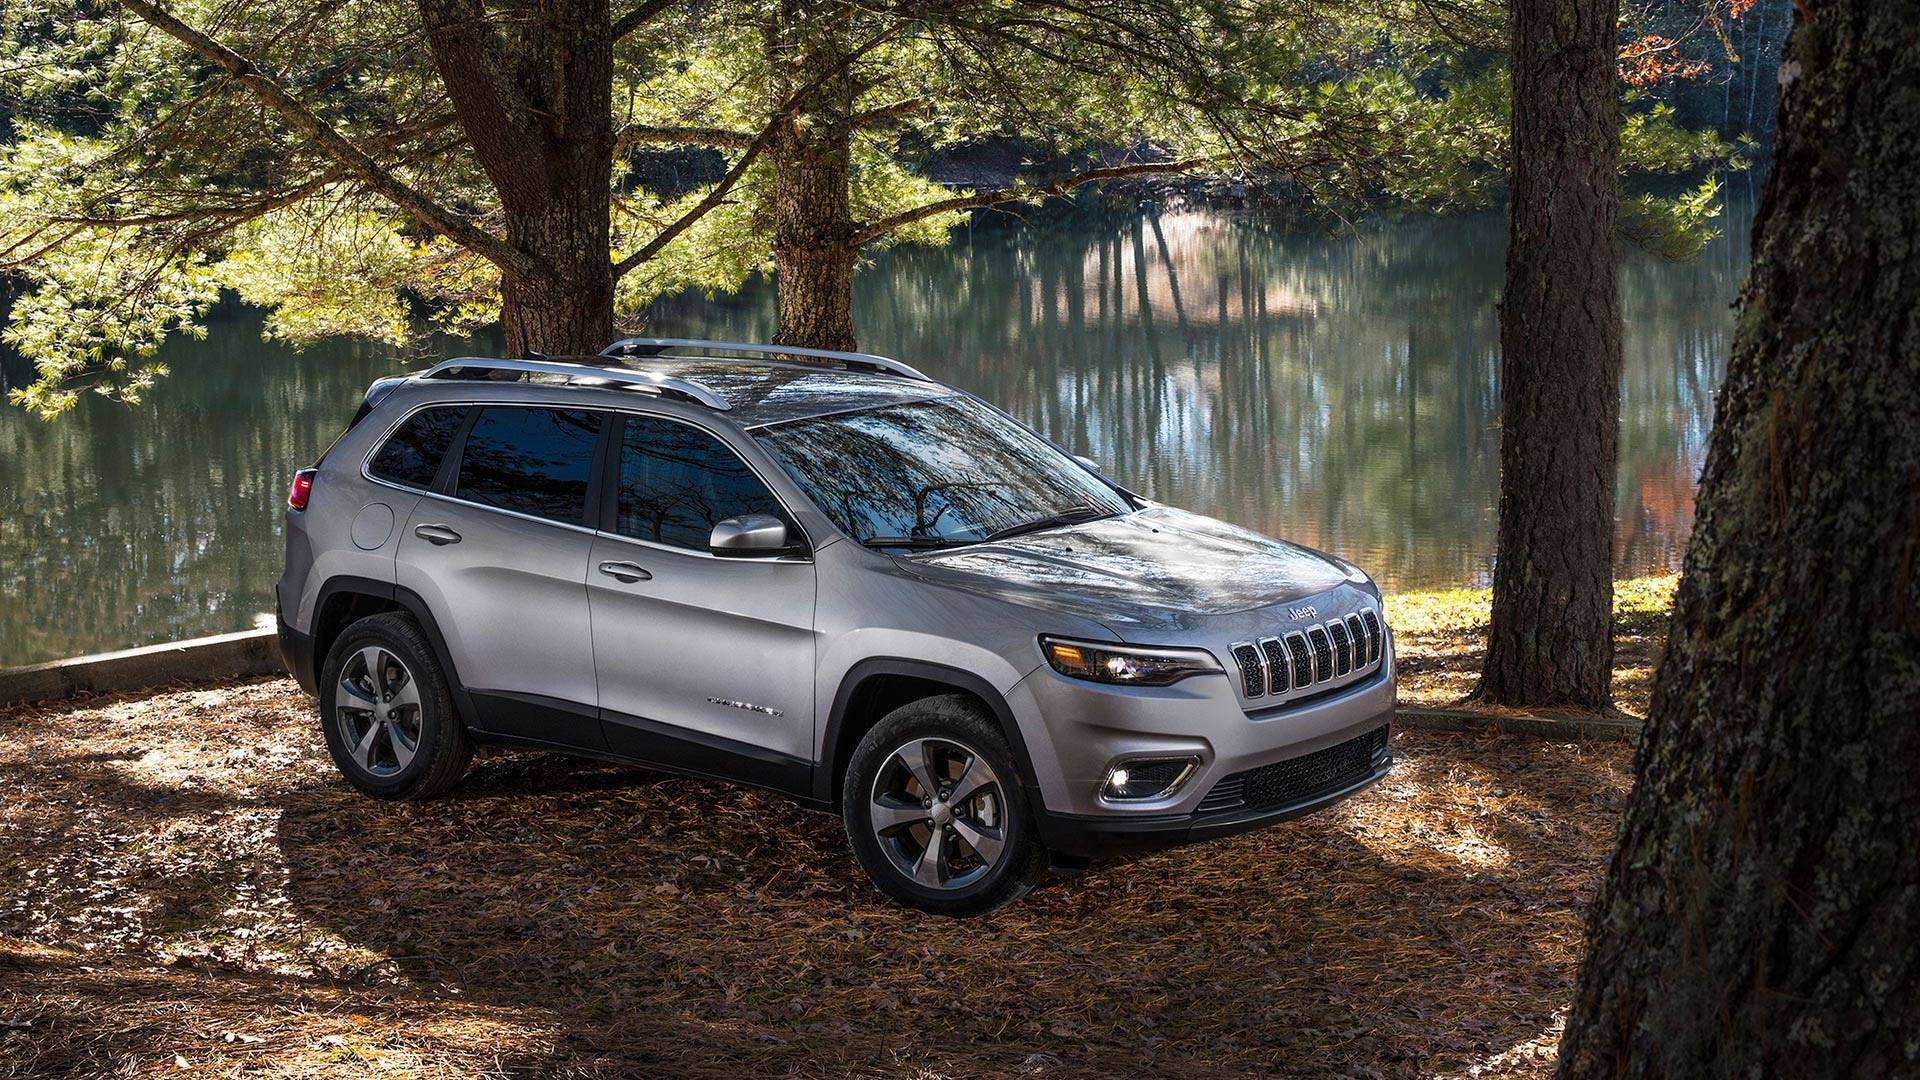 92 The 2019 Jeep Trailhawk Towing Capacity History by 2019 Jeep Trailhawk Towing Capacity